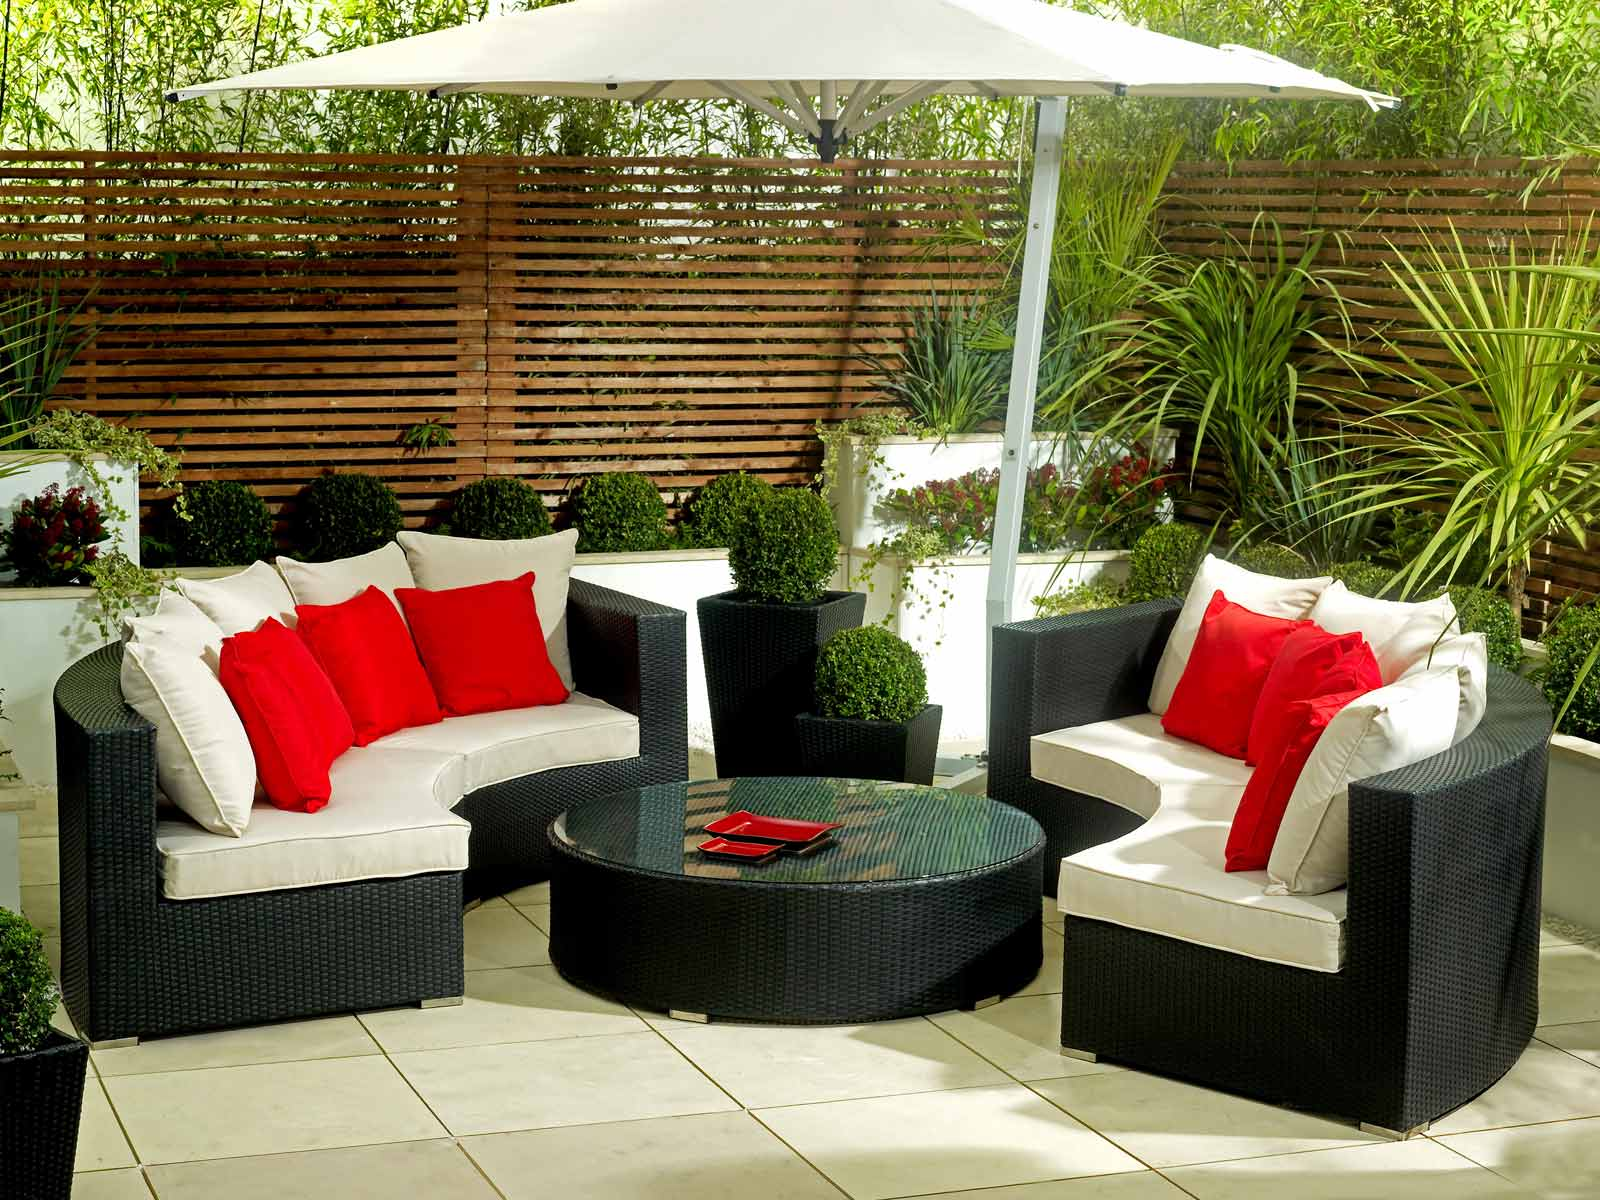 Garden Furniture 4 Less simple garden furniture - pueblosinfronteras